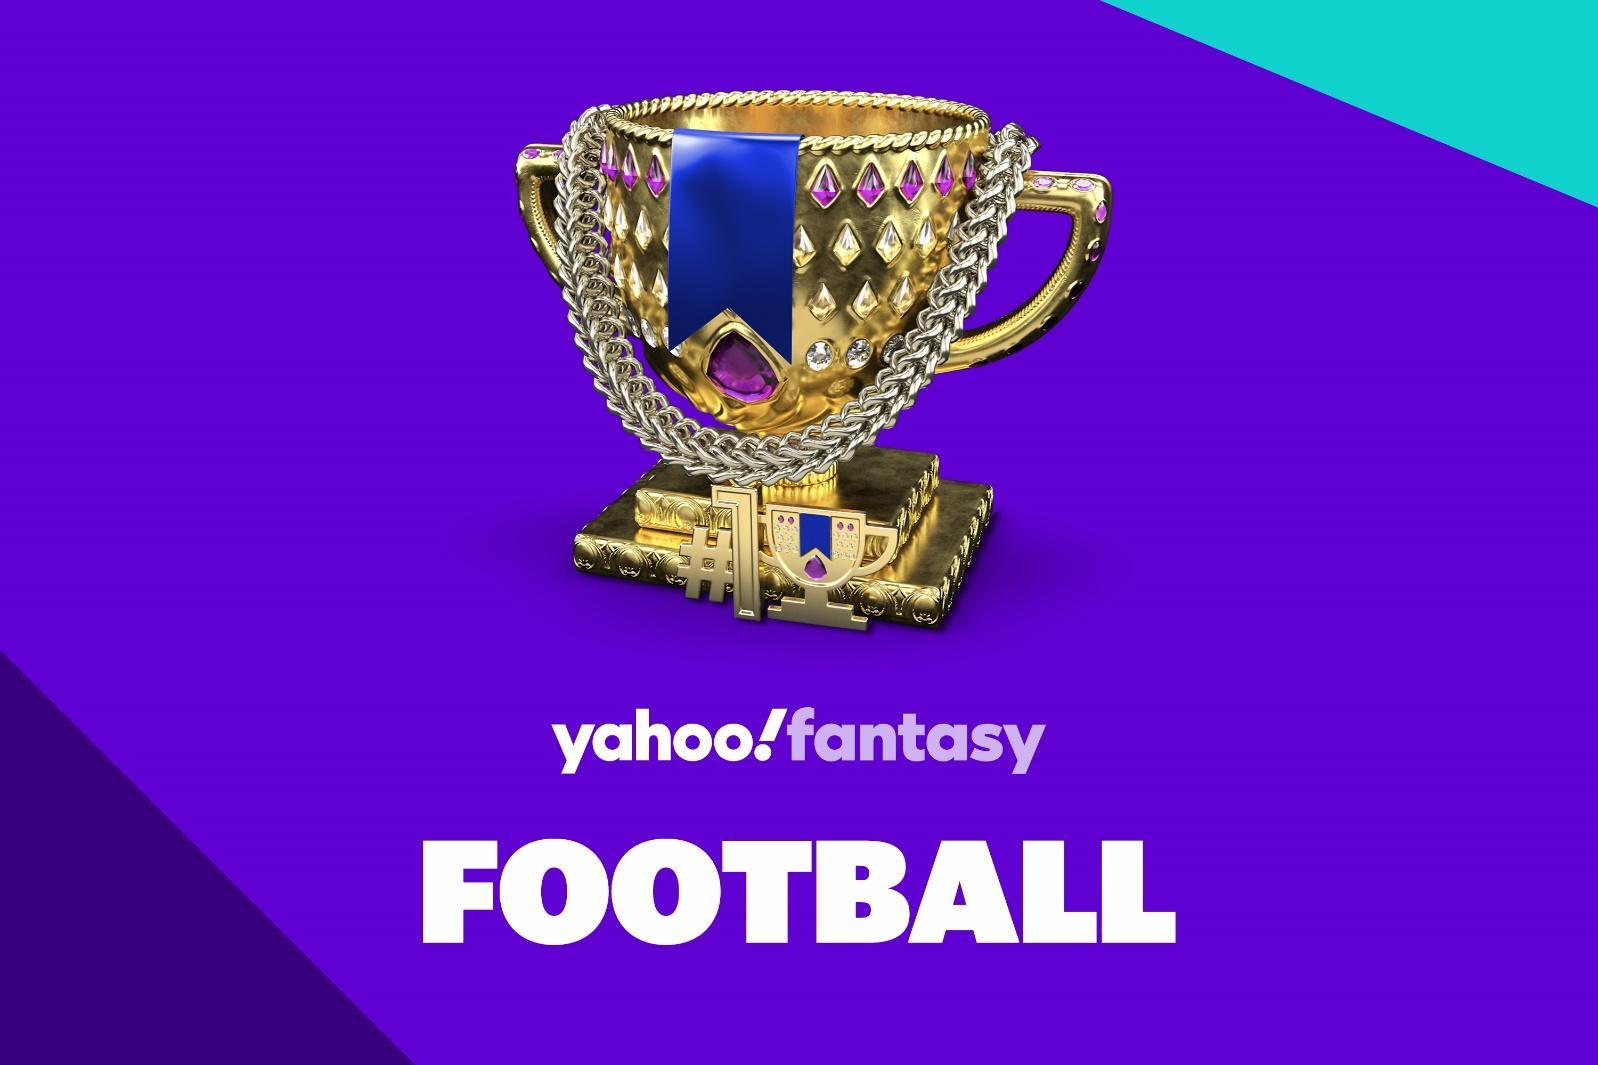 Yahoo Fantasy Football open for 2020 NFL season: Sign up to play